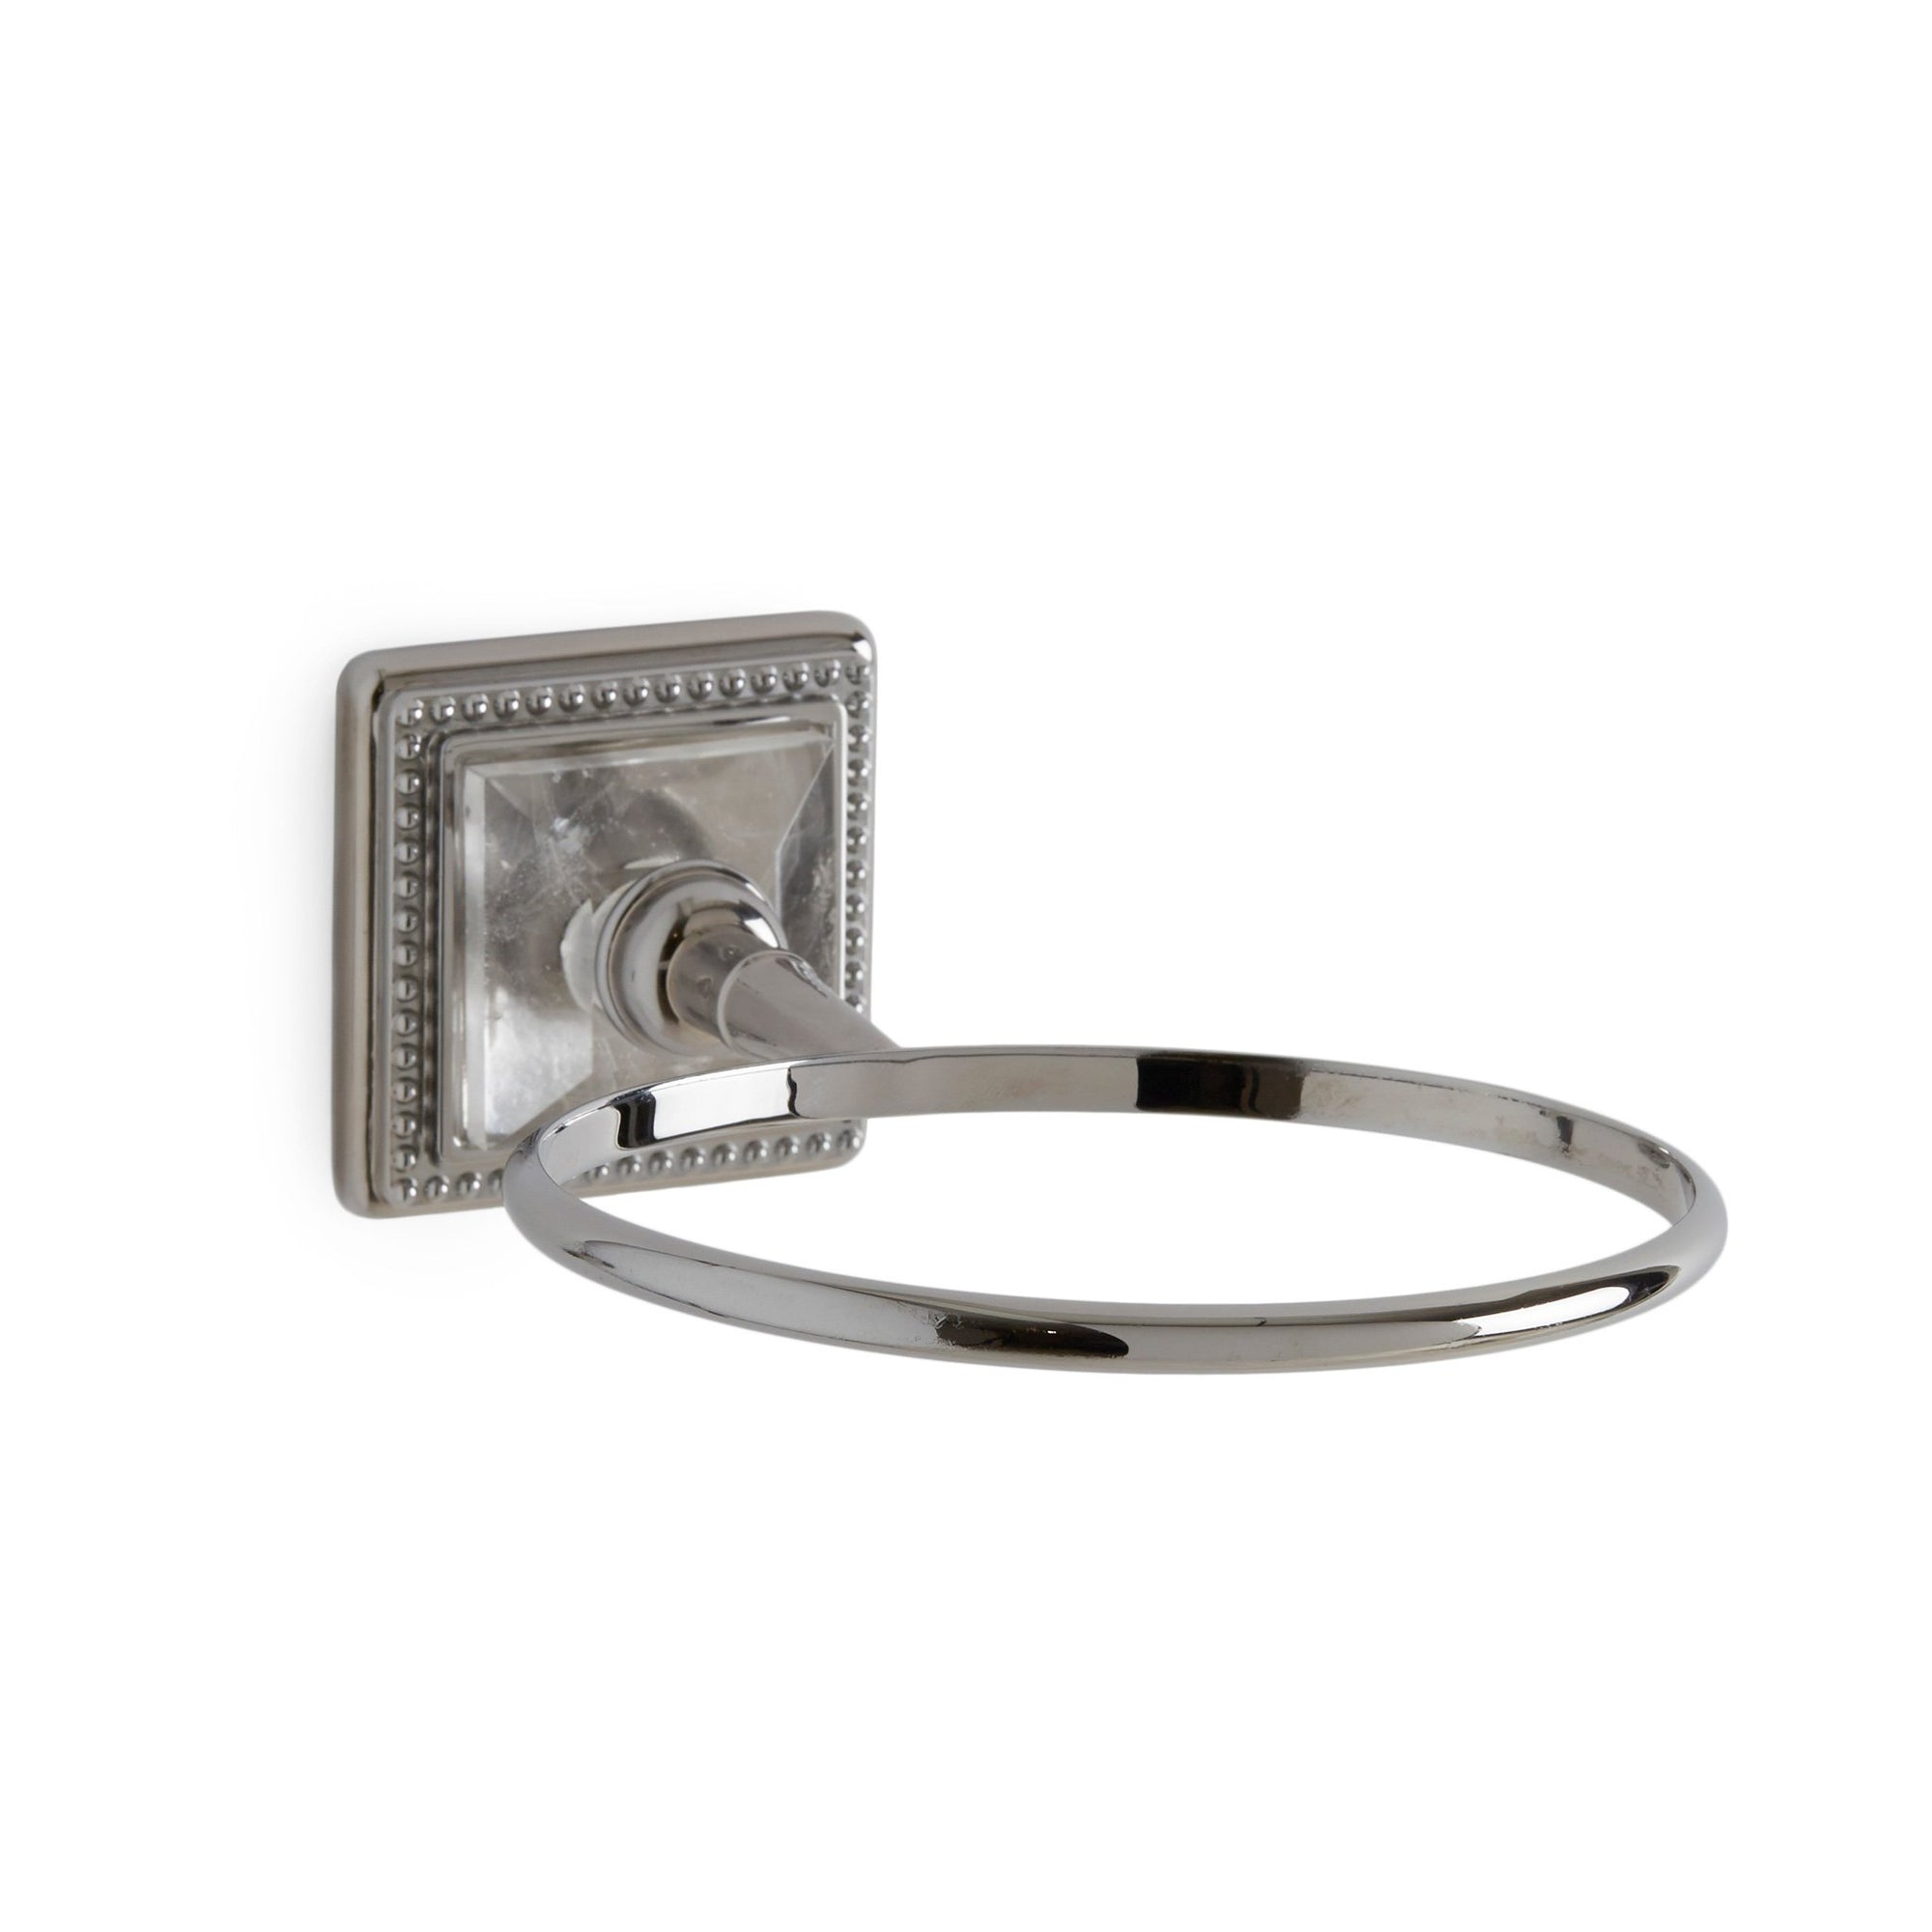 3221-P-RKCR-CP Sherle Wagner International The Semiprecious Pyramid Soap Dish Holder in Polished Chrome metal finish